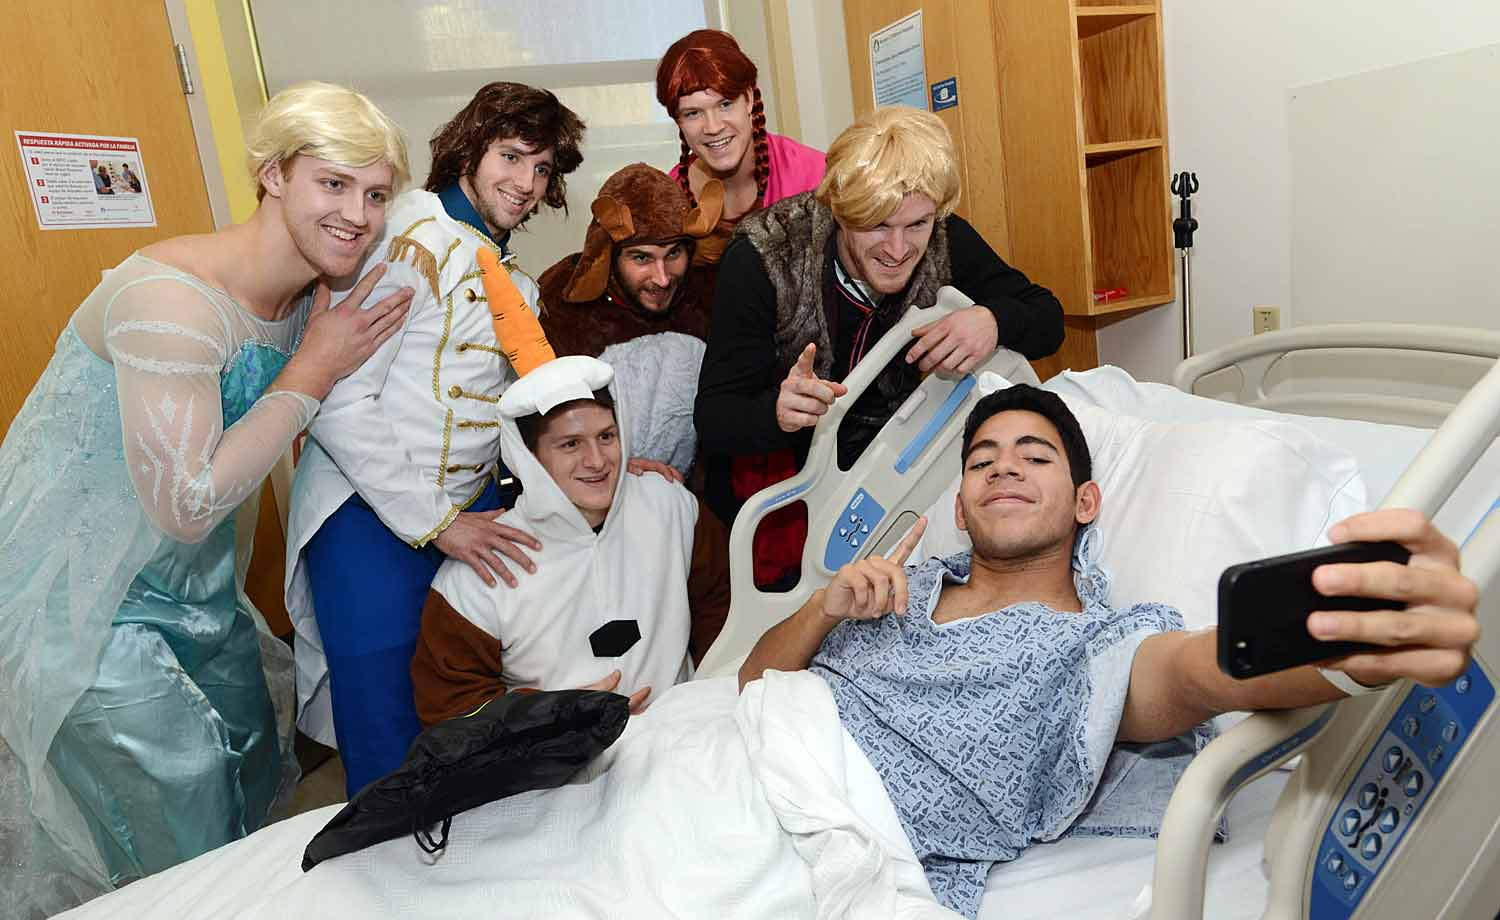 Looking as lovely as ever, (L-to-R) Kevan Miller, Dougie Hamilton, Matt Fraser, Seth Griffith, Matt Bartkowski, and Torey Krug brought the Halloween Spirit to a patient named William at Boston Children's Hospital on Oct. 27, 2014.